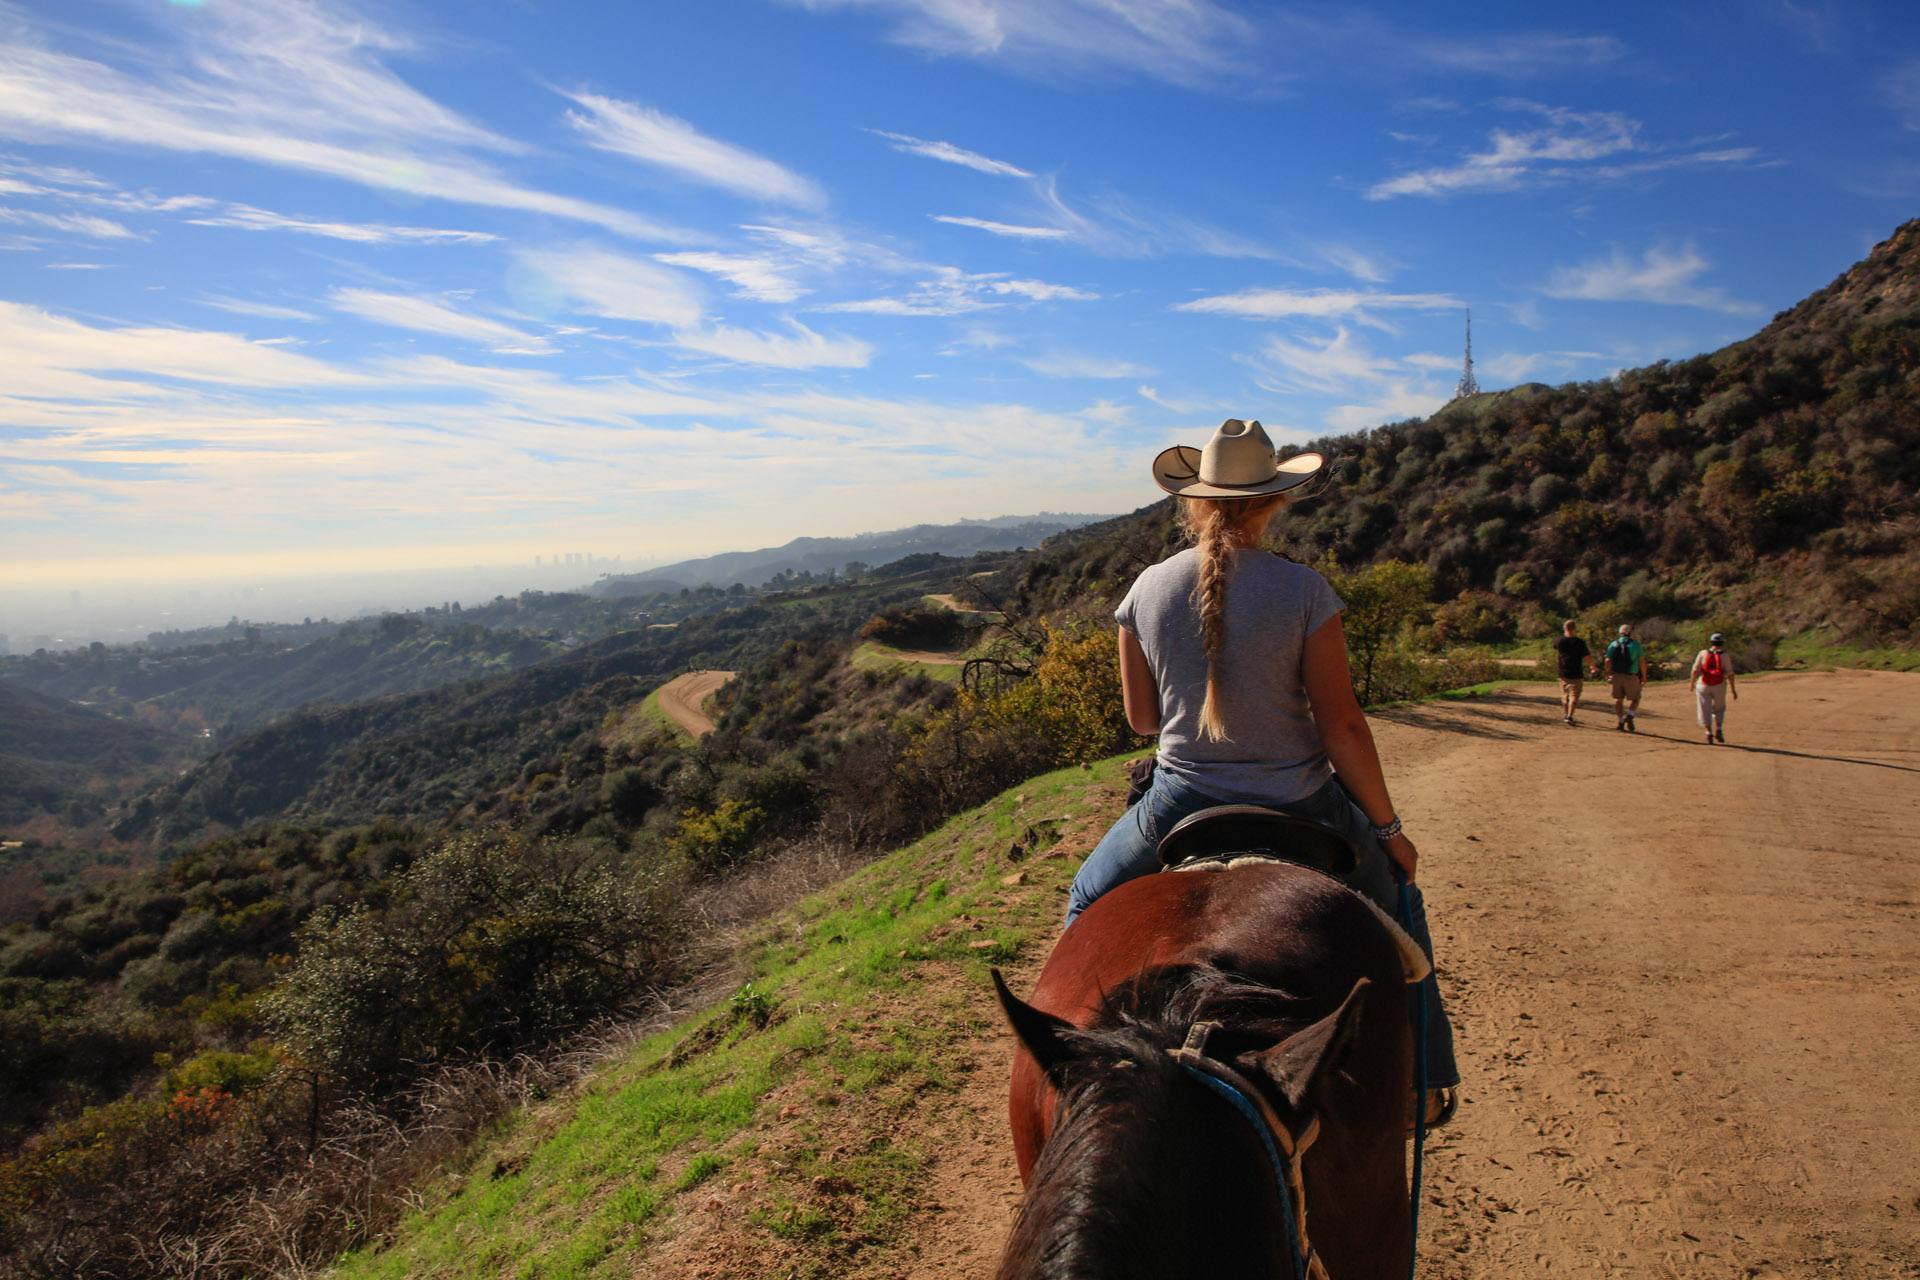 View from the saddle at Sunset Ranch Hollywood   |  Photo: Yuri Hasegawa